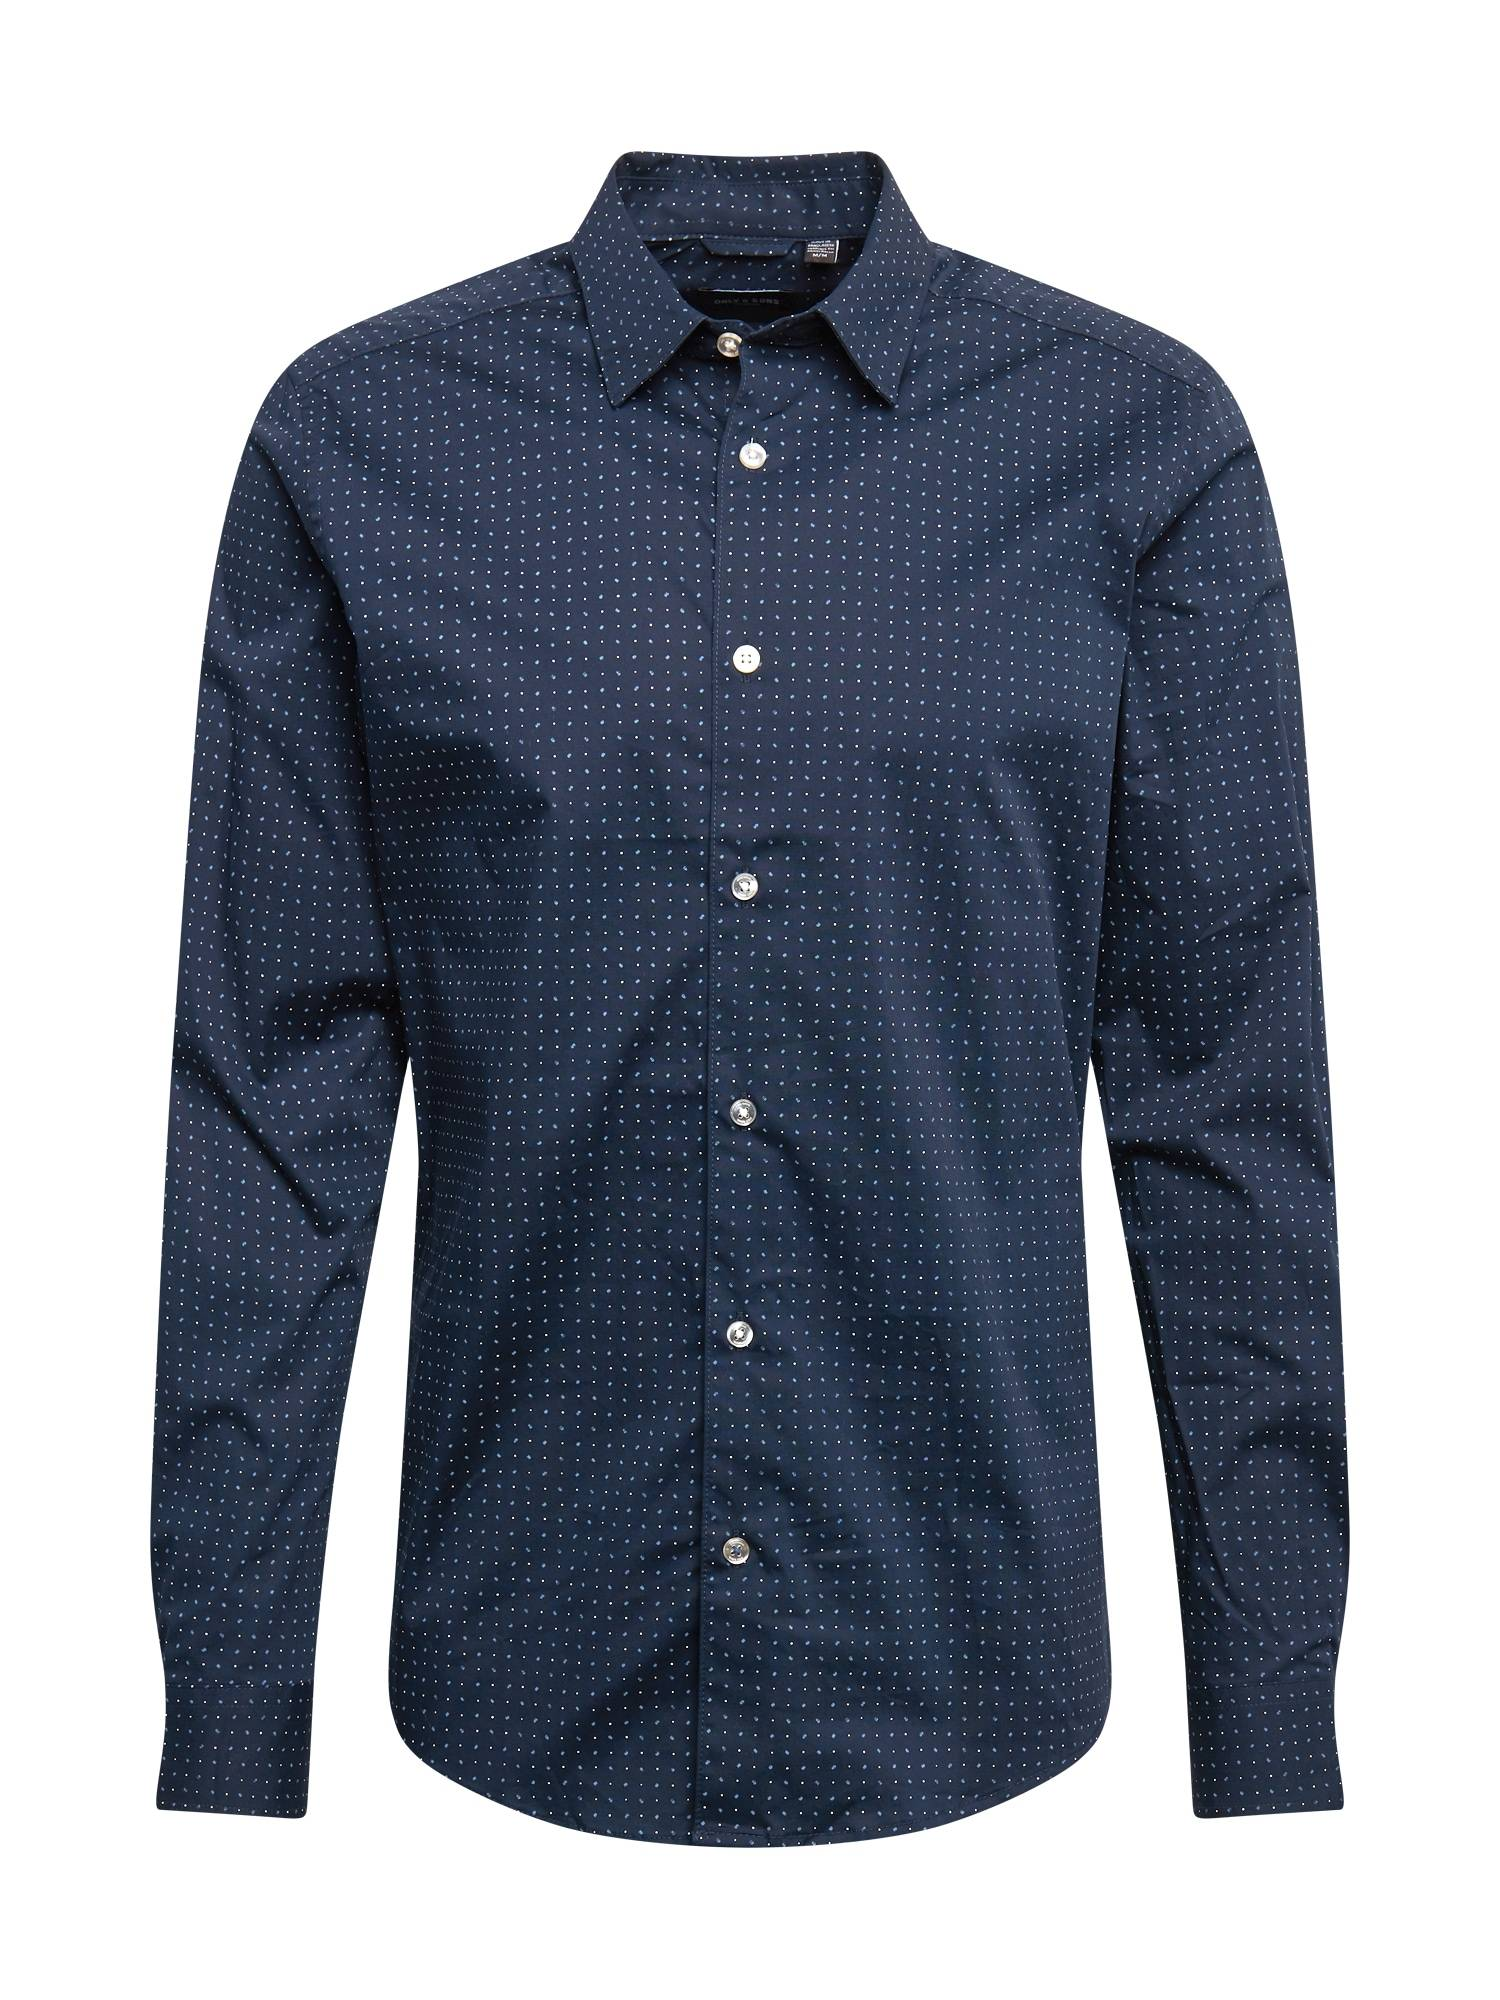 Only & Sons Chemise 'BART'  - Bleu - Taille: XS - male